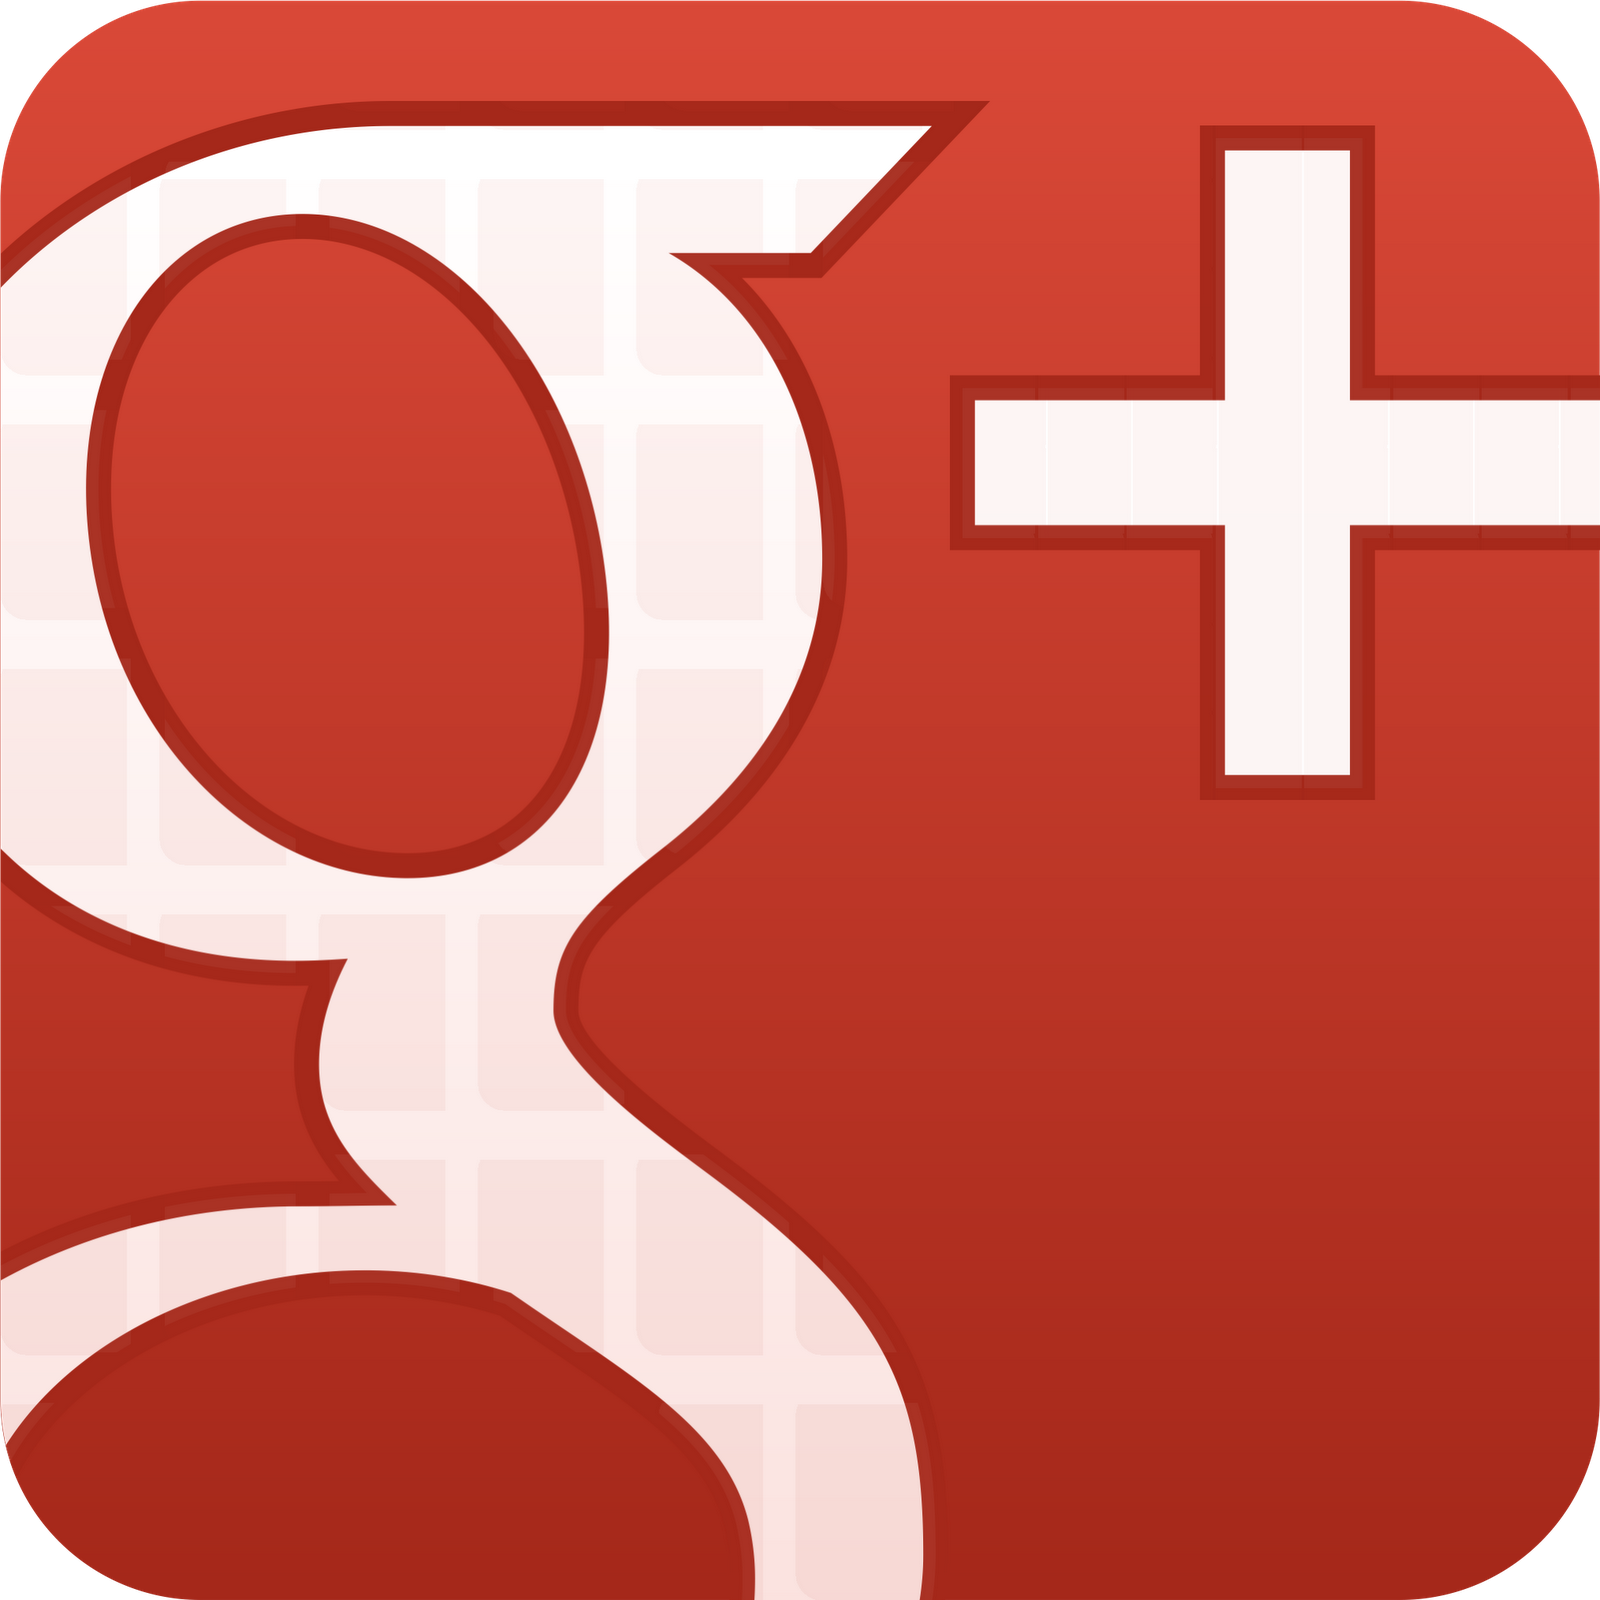 Download google plus logo latest version 2018 #1265 free icons.